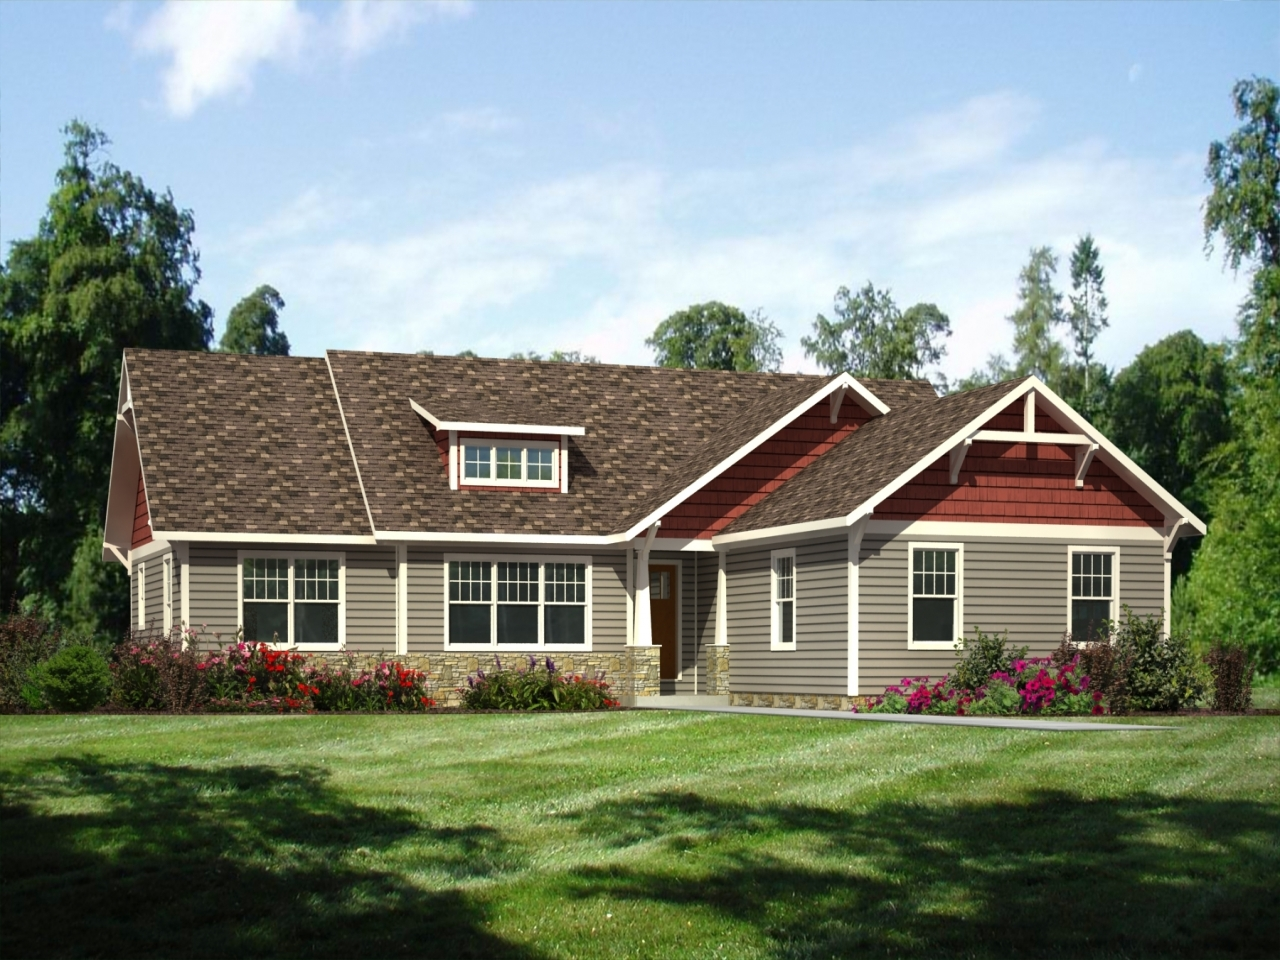 House colors for ranch style homes exterior house paint for Ranch style home builders